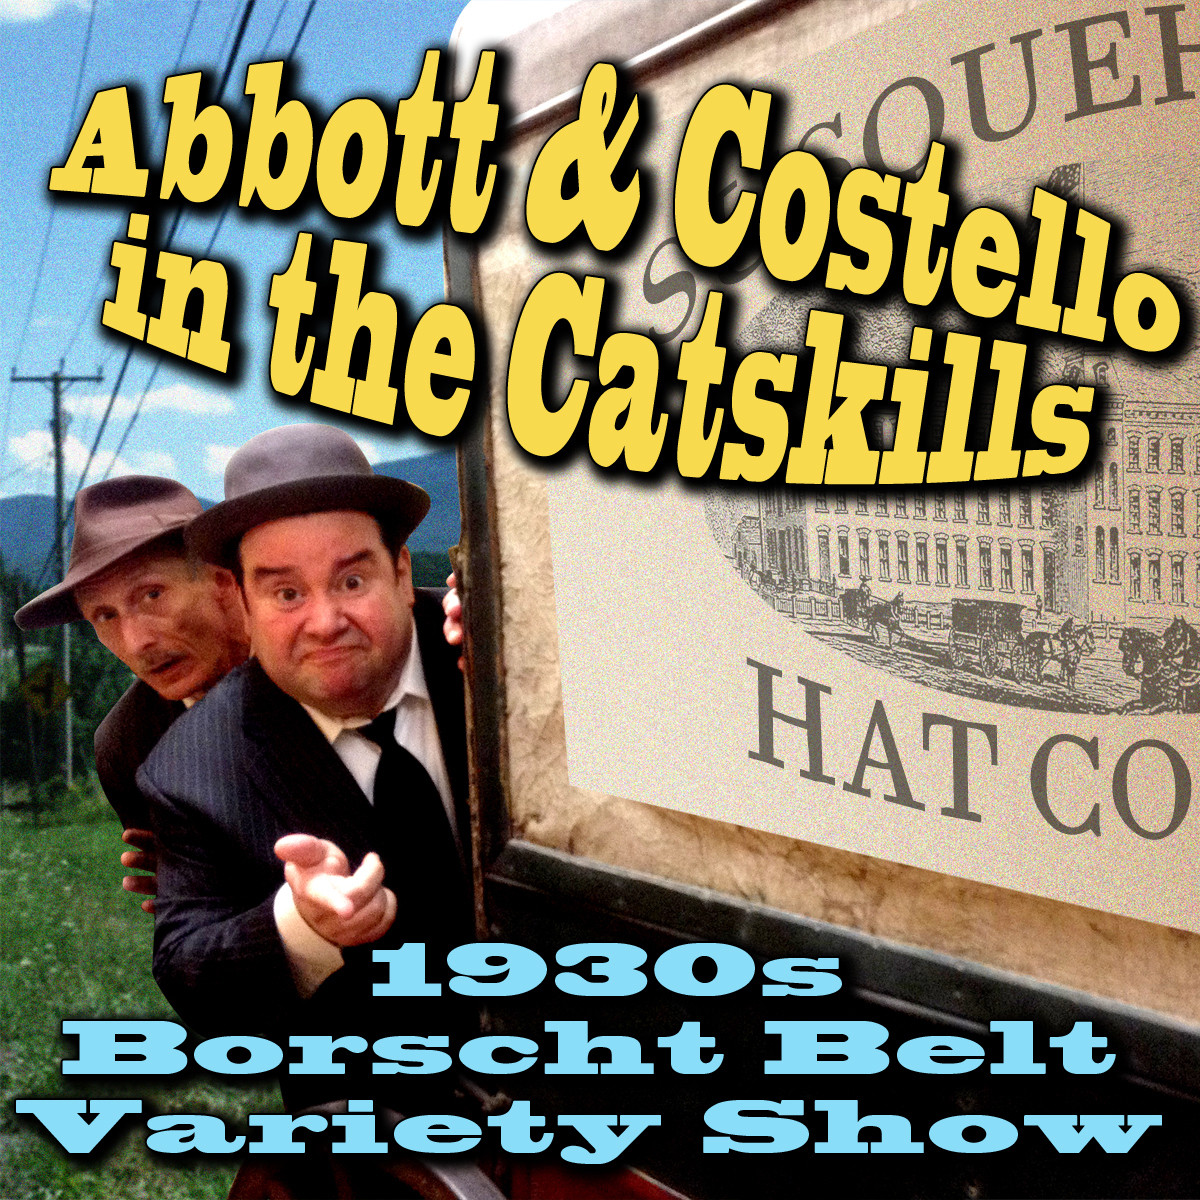 Printable Abbott & Costello in the Catskills: An Authentic Recreation of a 1930s Borscht Belt Variety Show, Recorded before a Live Audience in the Catskills Audiobook Cover Art